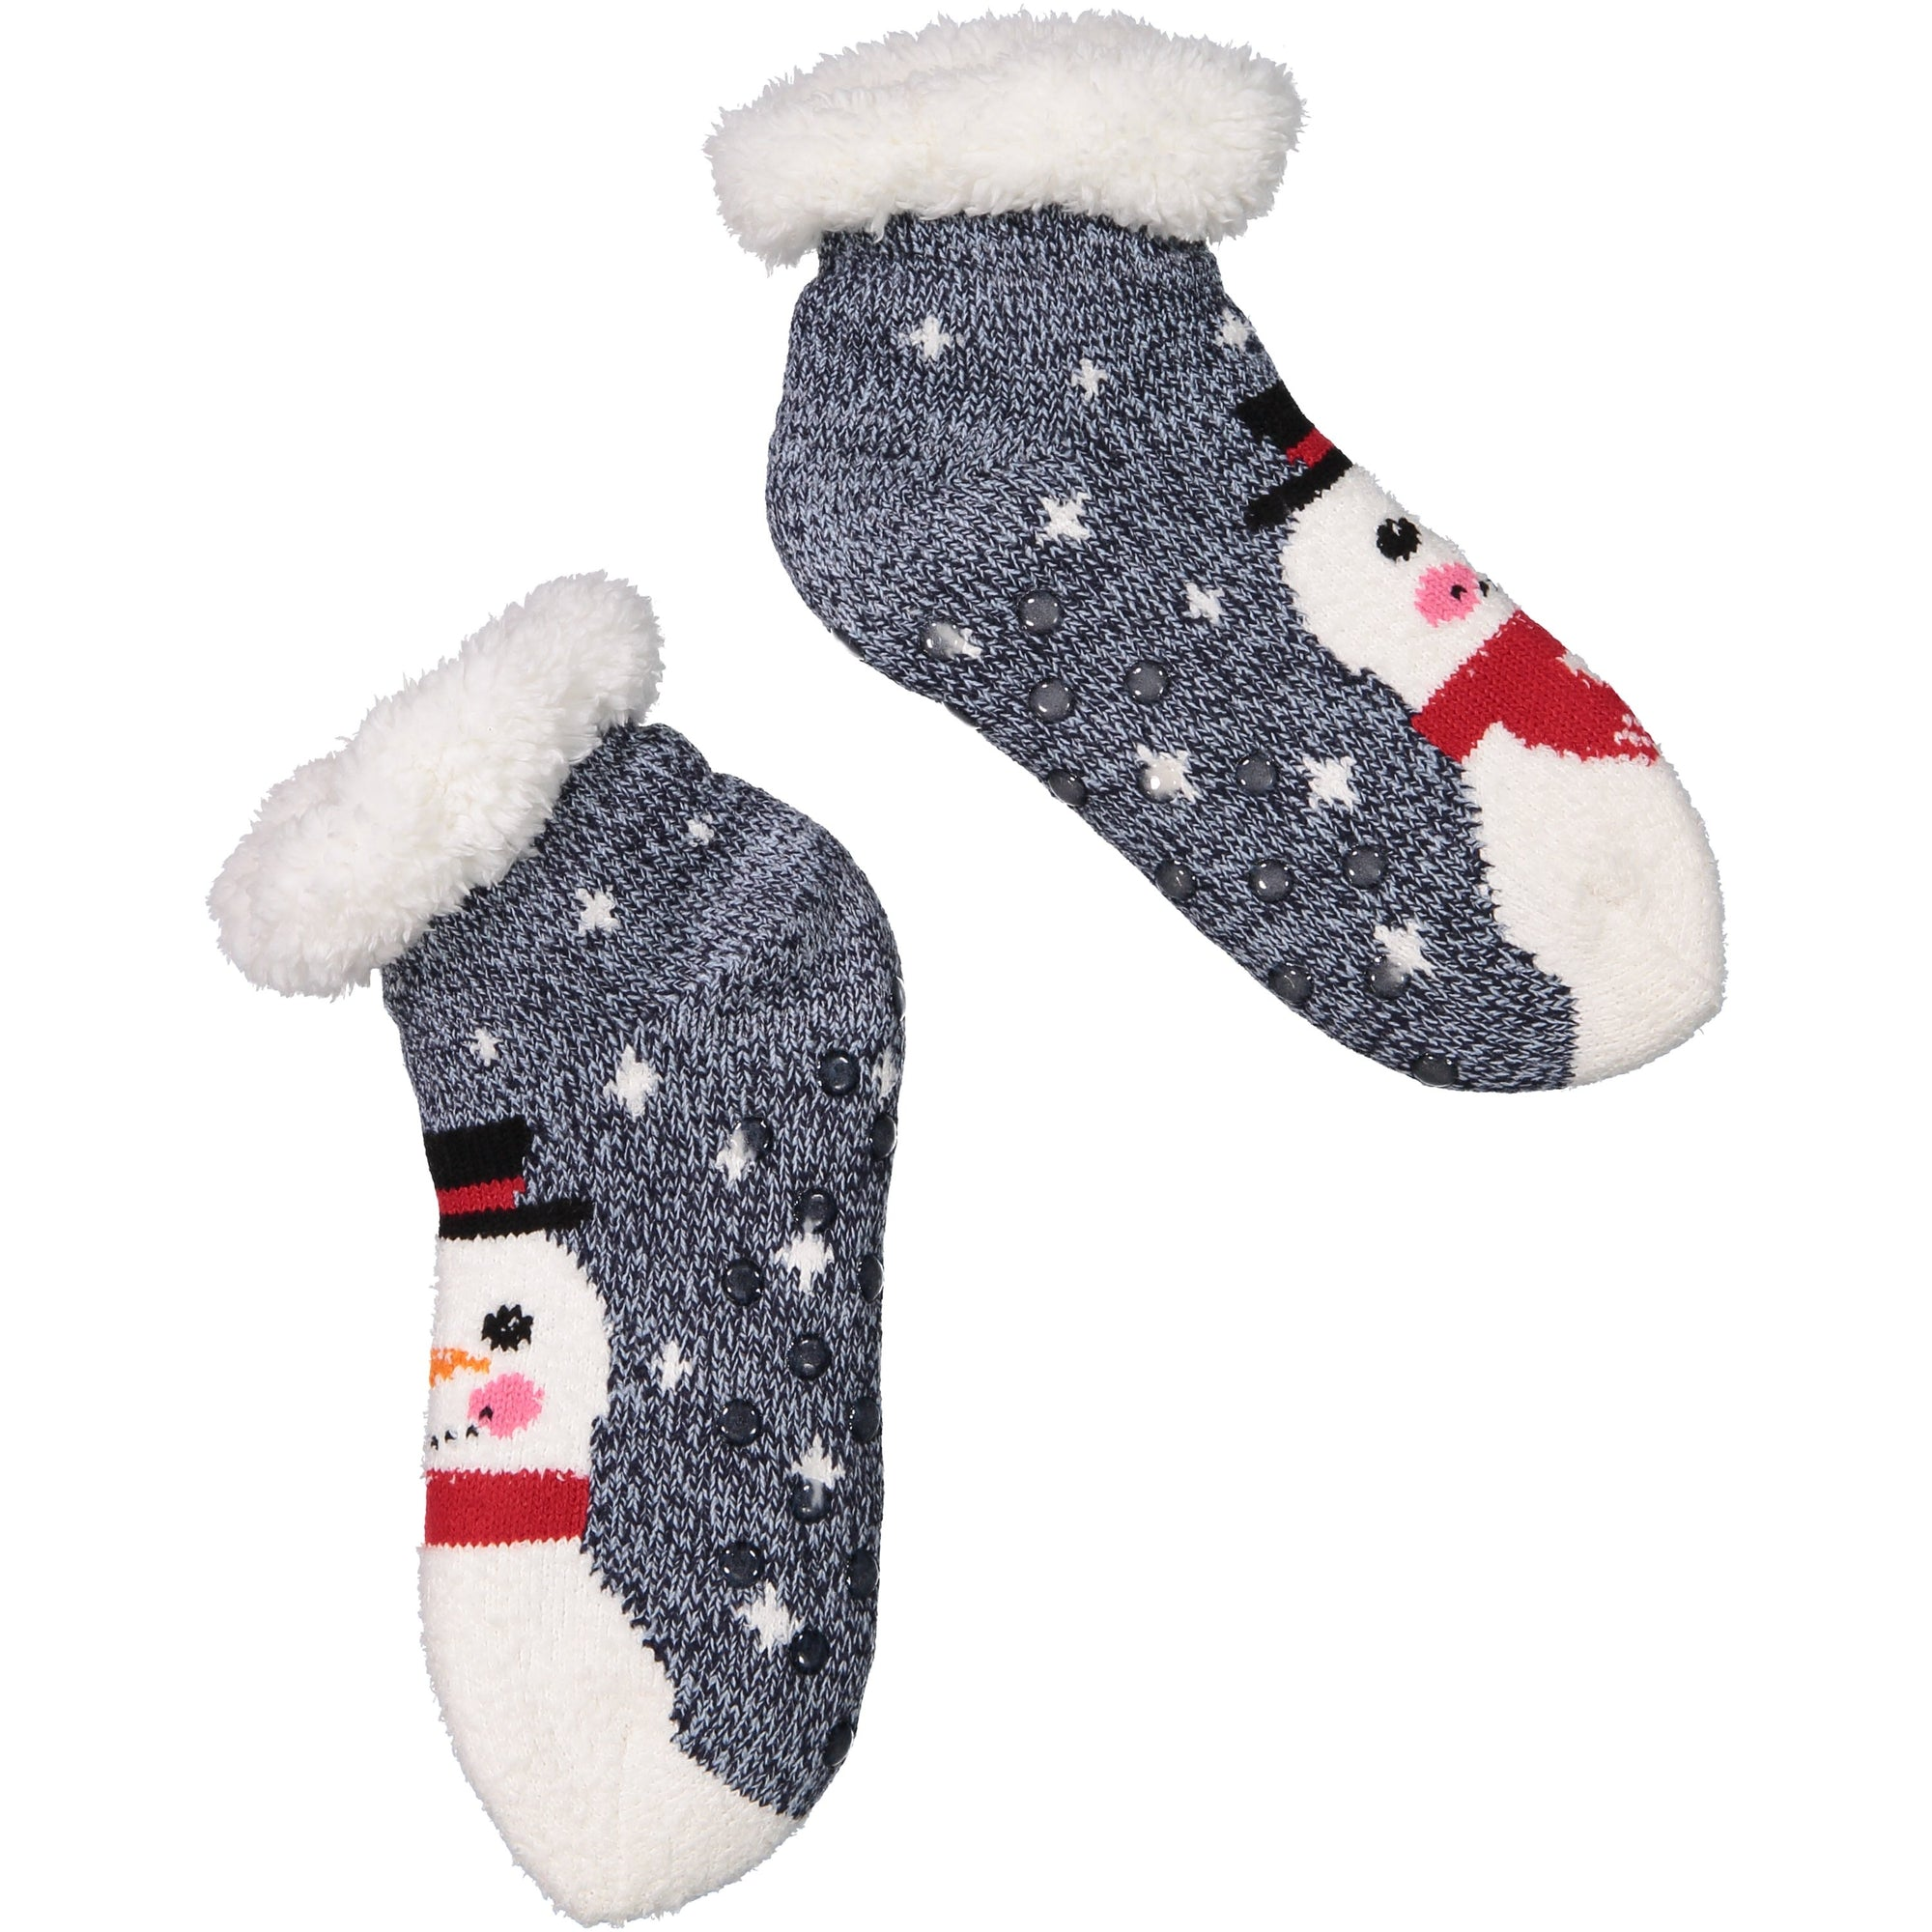 Women's Cozy Snowman Holiday Knit Slipper Socks with Sherpa Lining